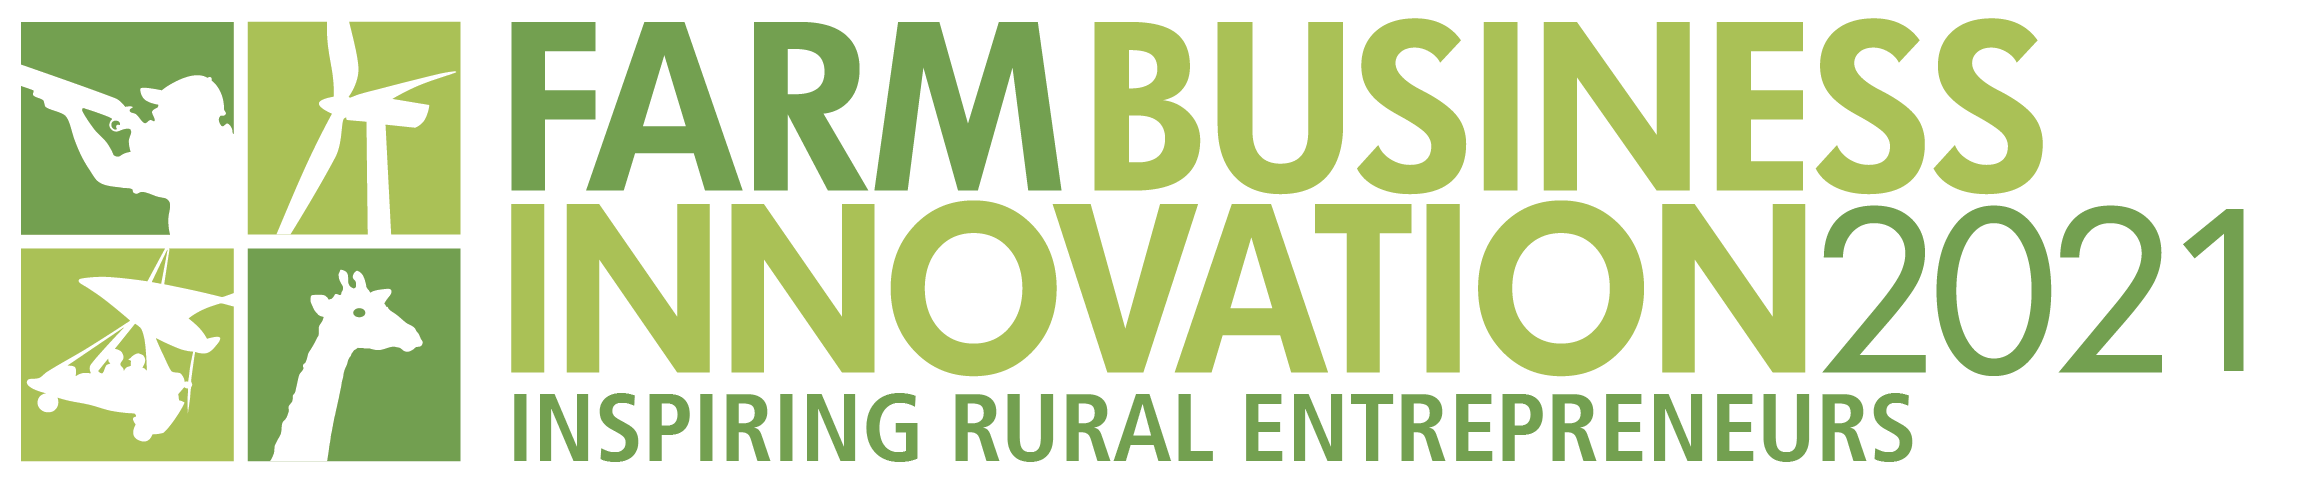 Farm Business Innovation Expo